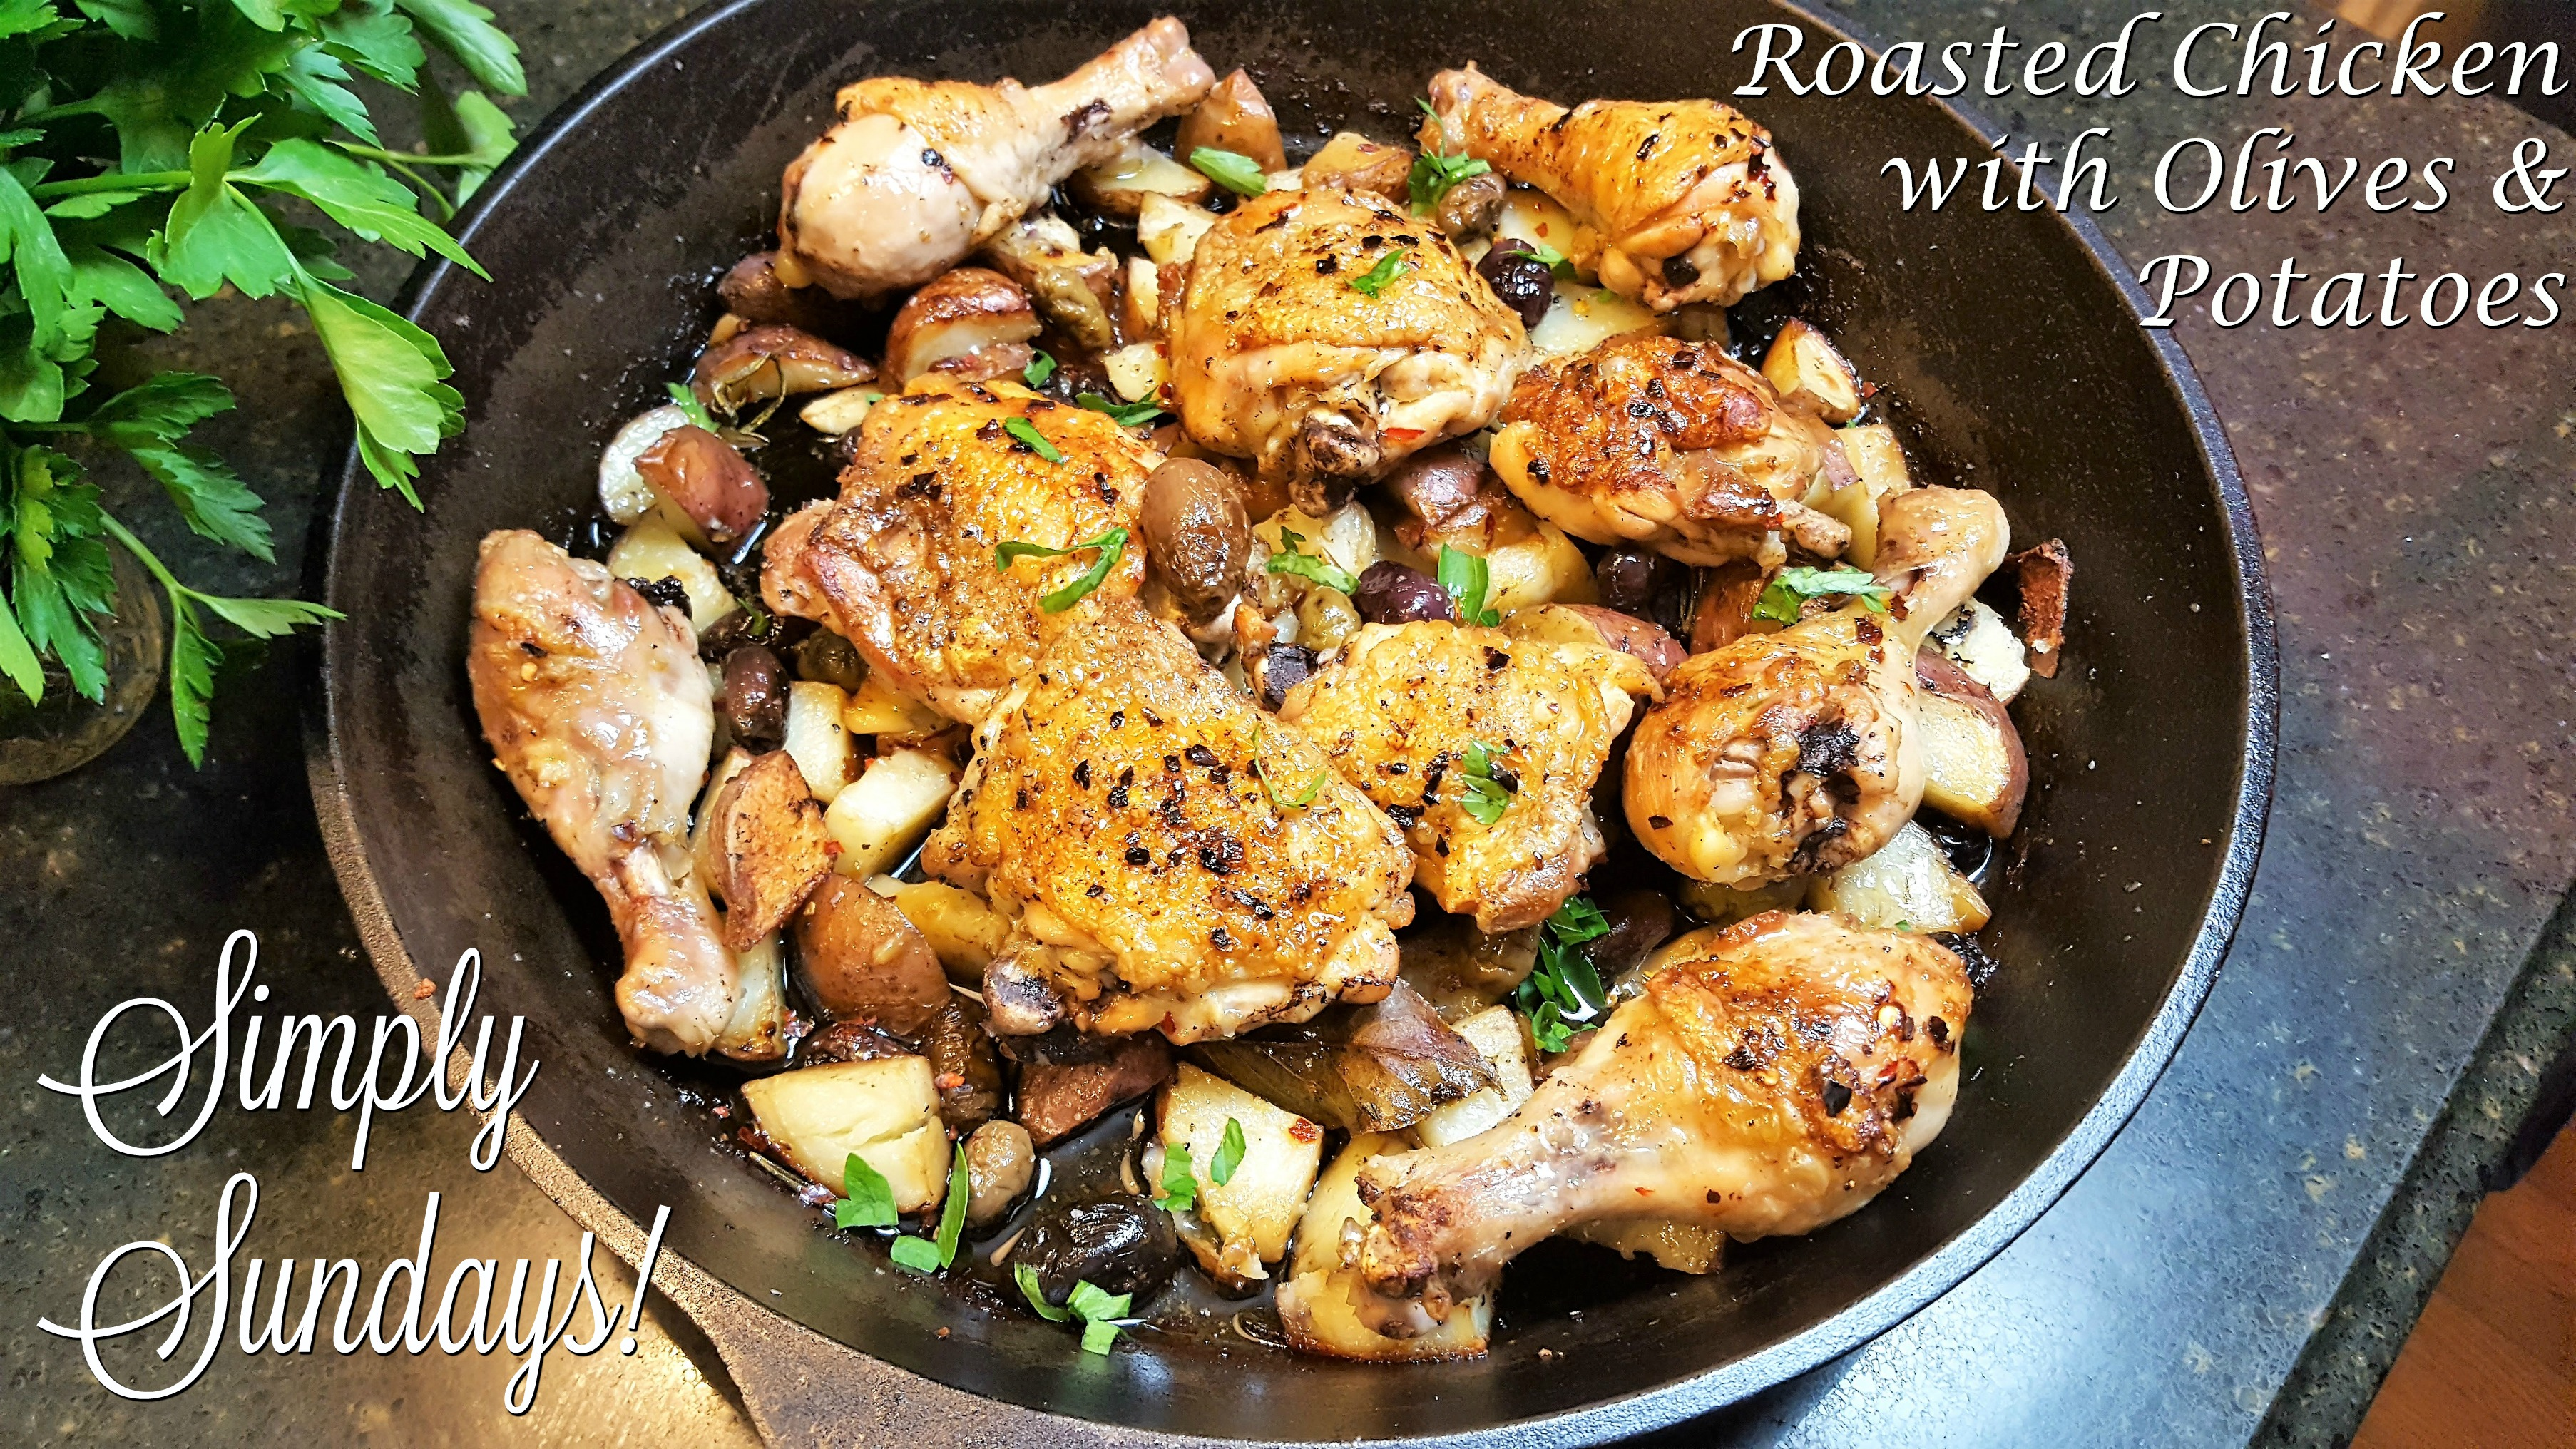 Roasted Chicken with Olives and Potatoes – Simply Sundays!